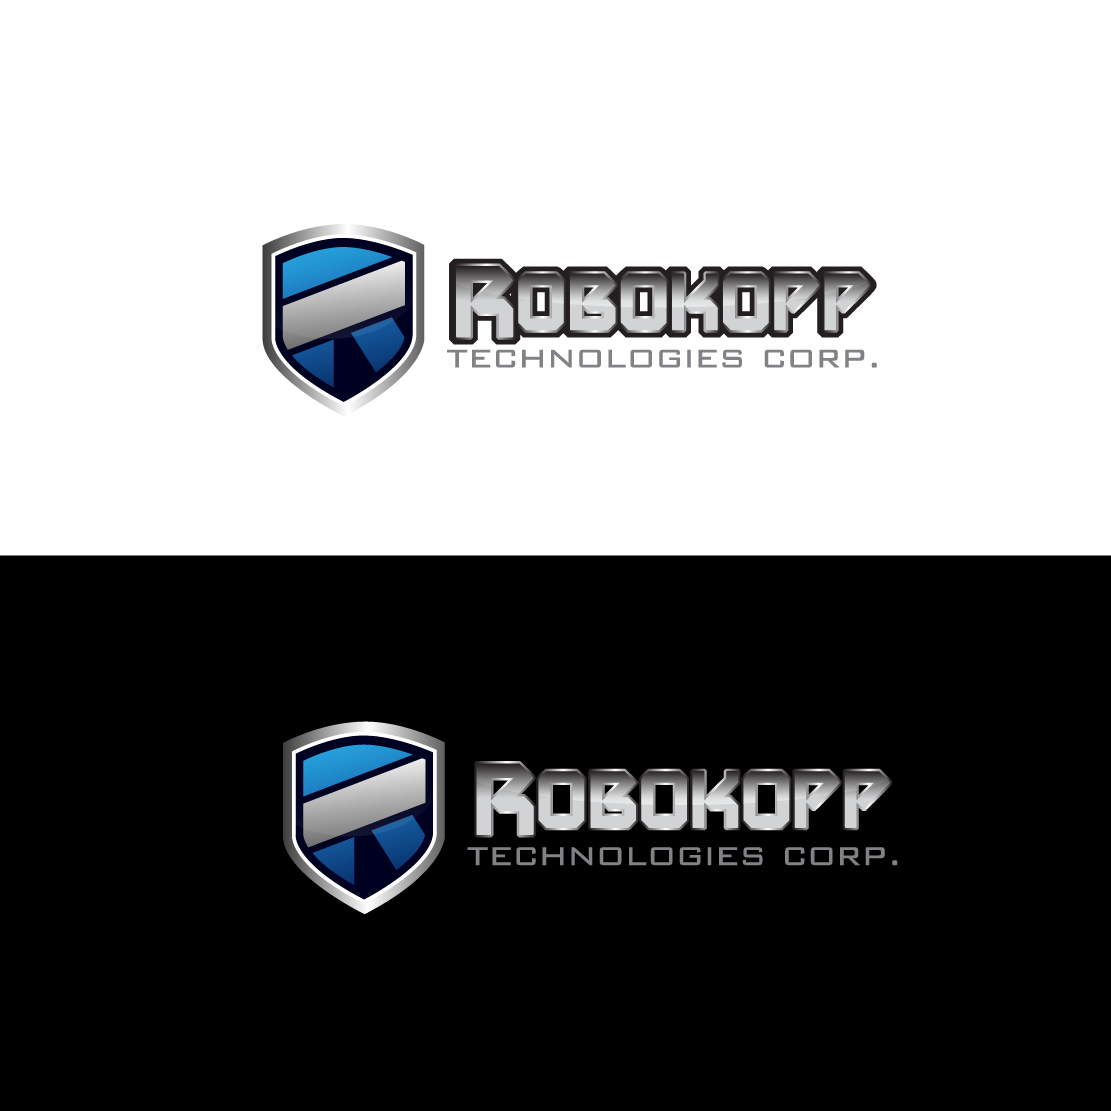 Logo Design by Private User - Entry No. 142 in the Logo Design Contest New Logo Design for Robokopp Technologies Corp..